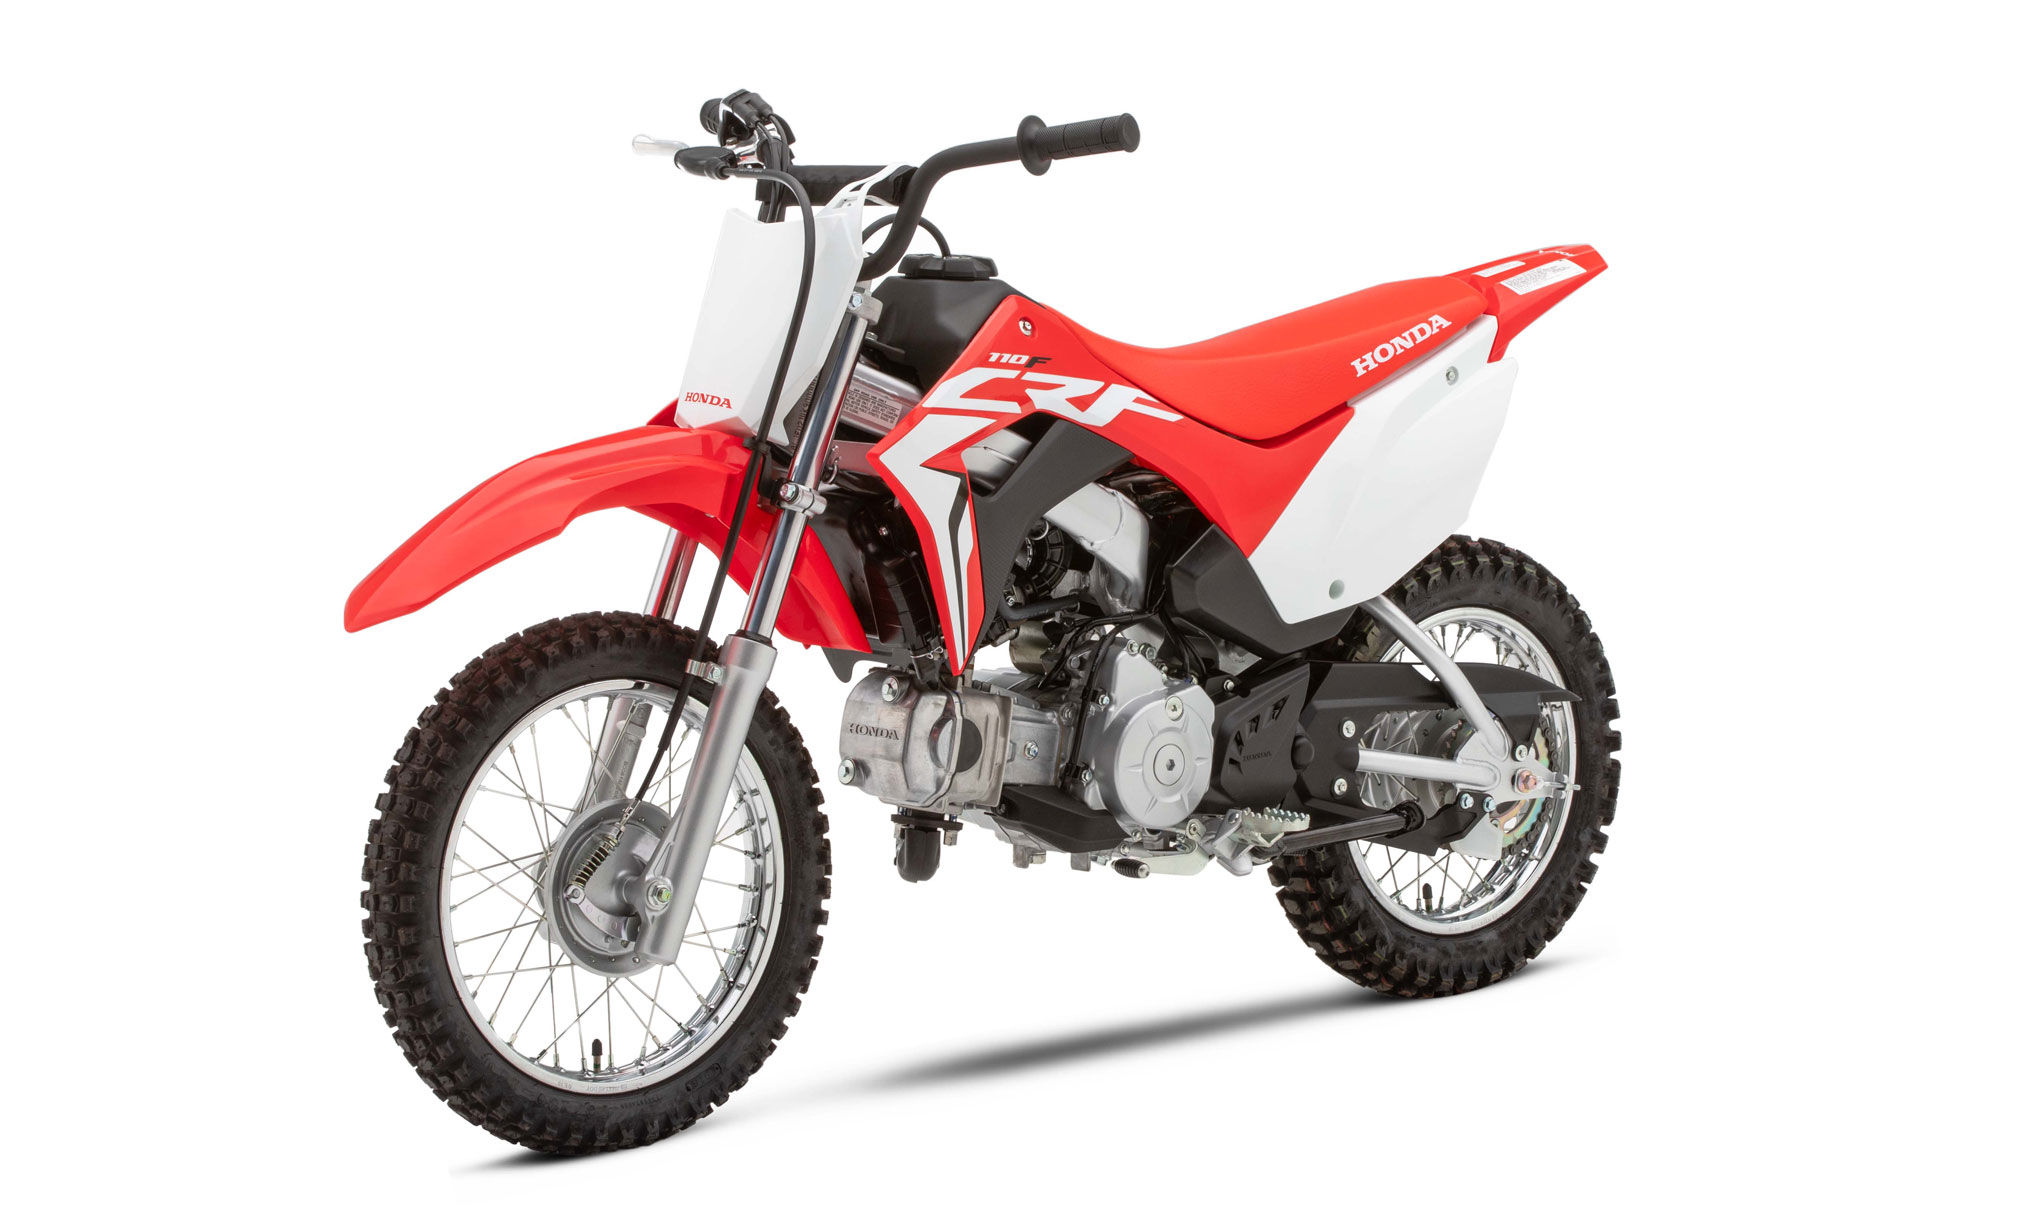 2021 honda crf110f guide • total motorcycle